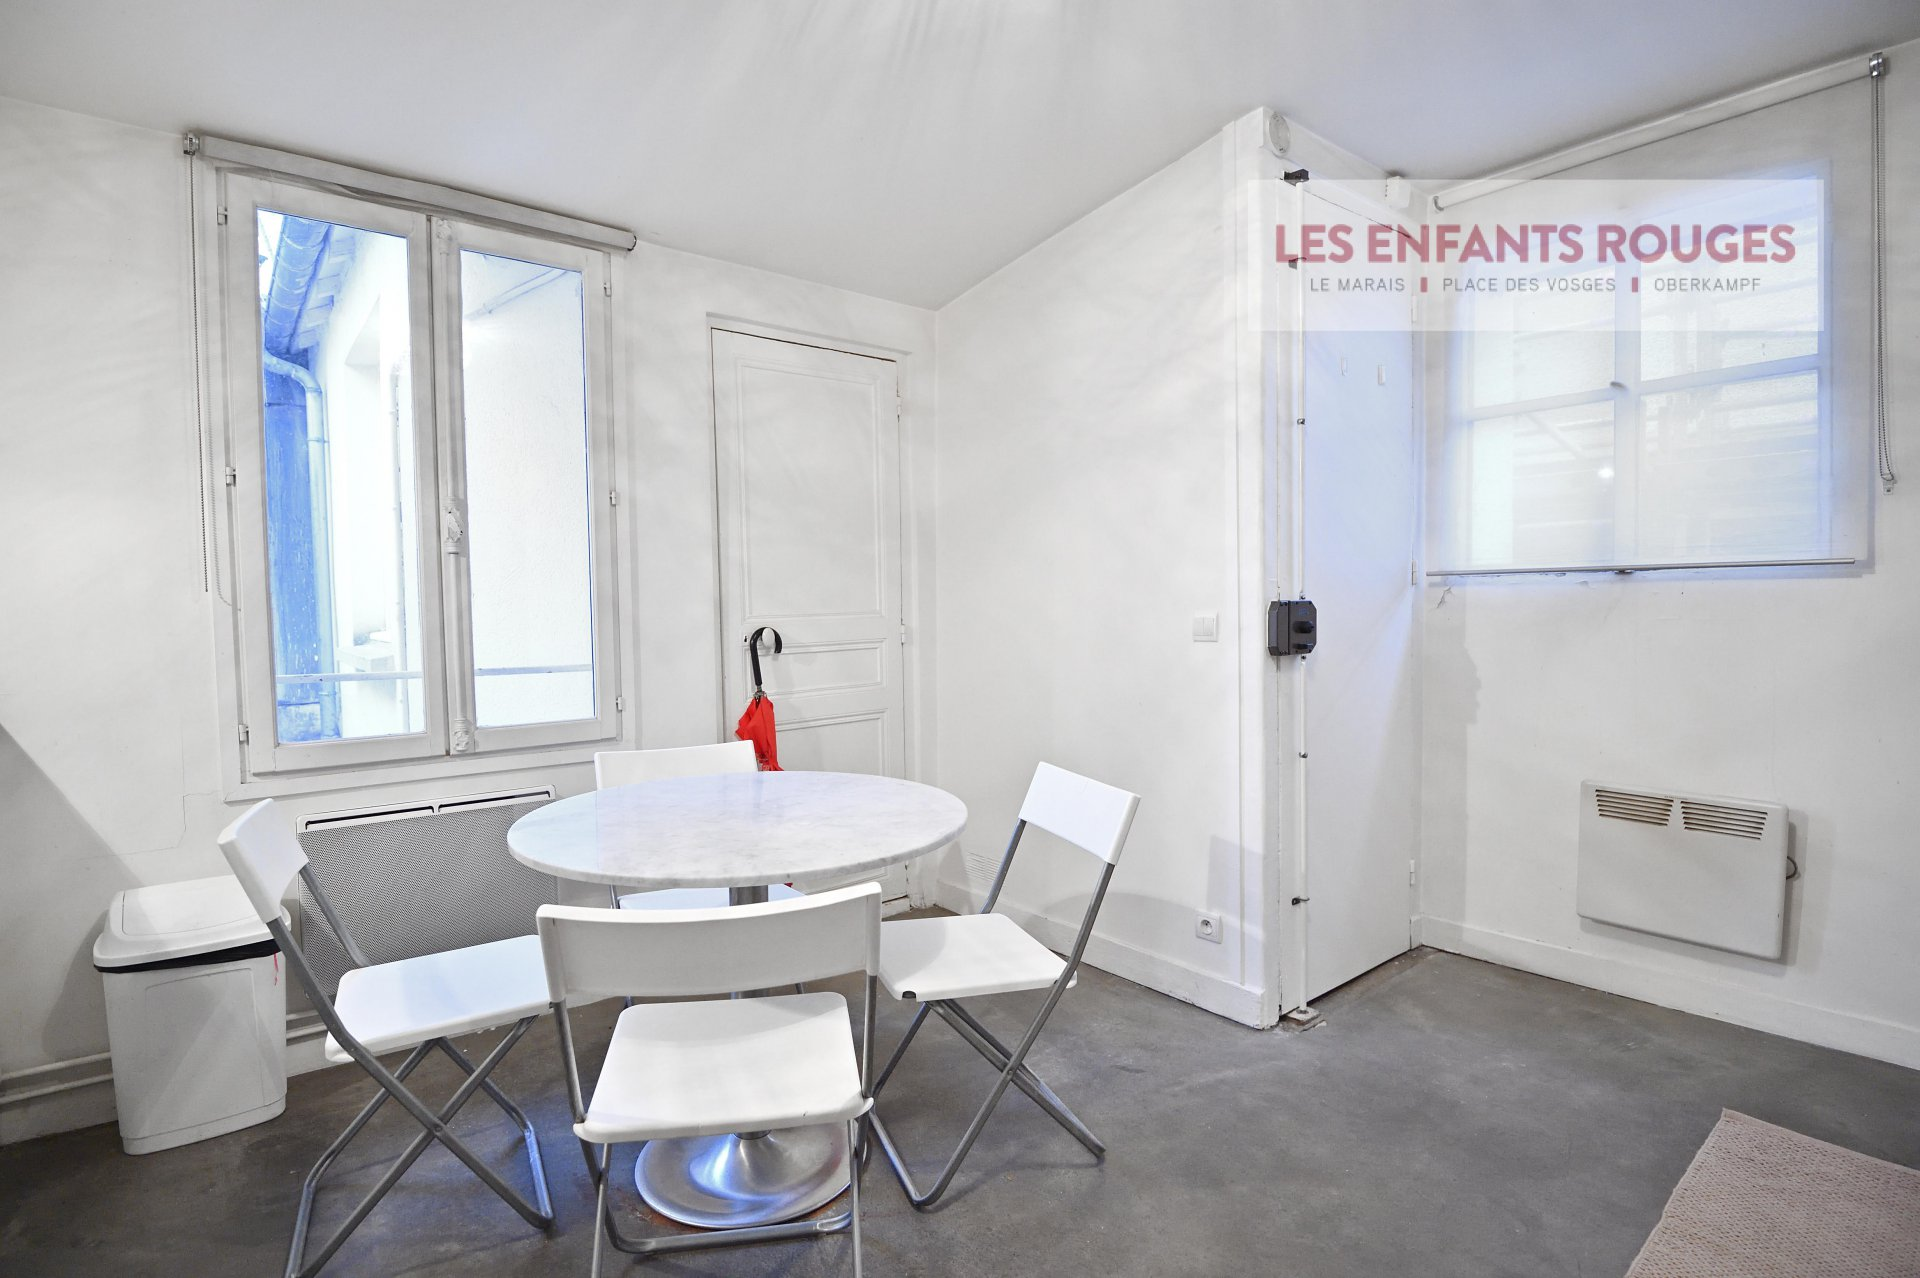 Sale Apartment - Paris 4th (Paris 4ème)